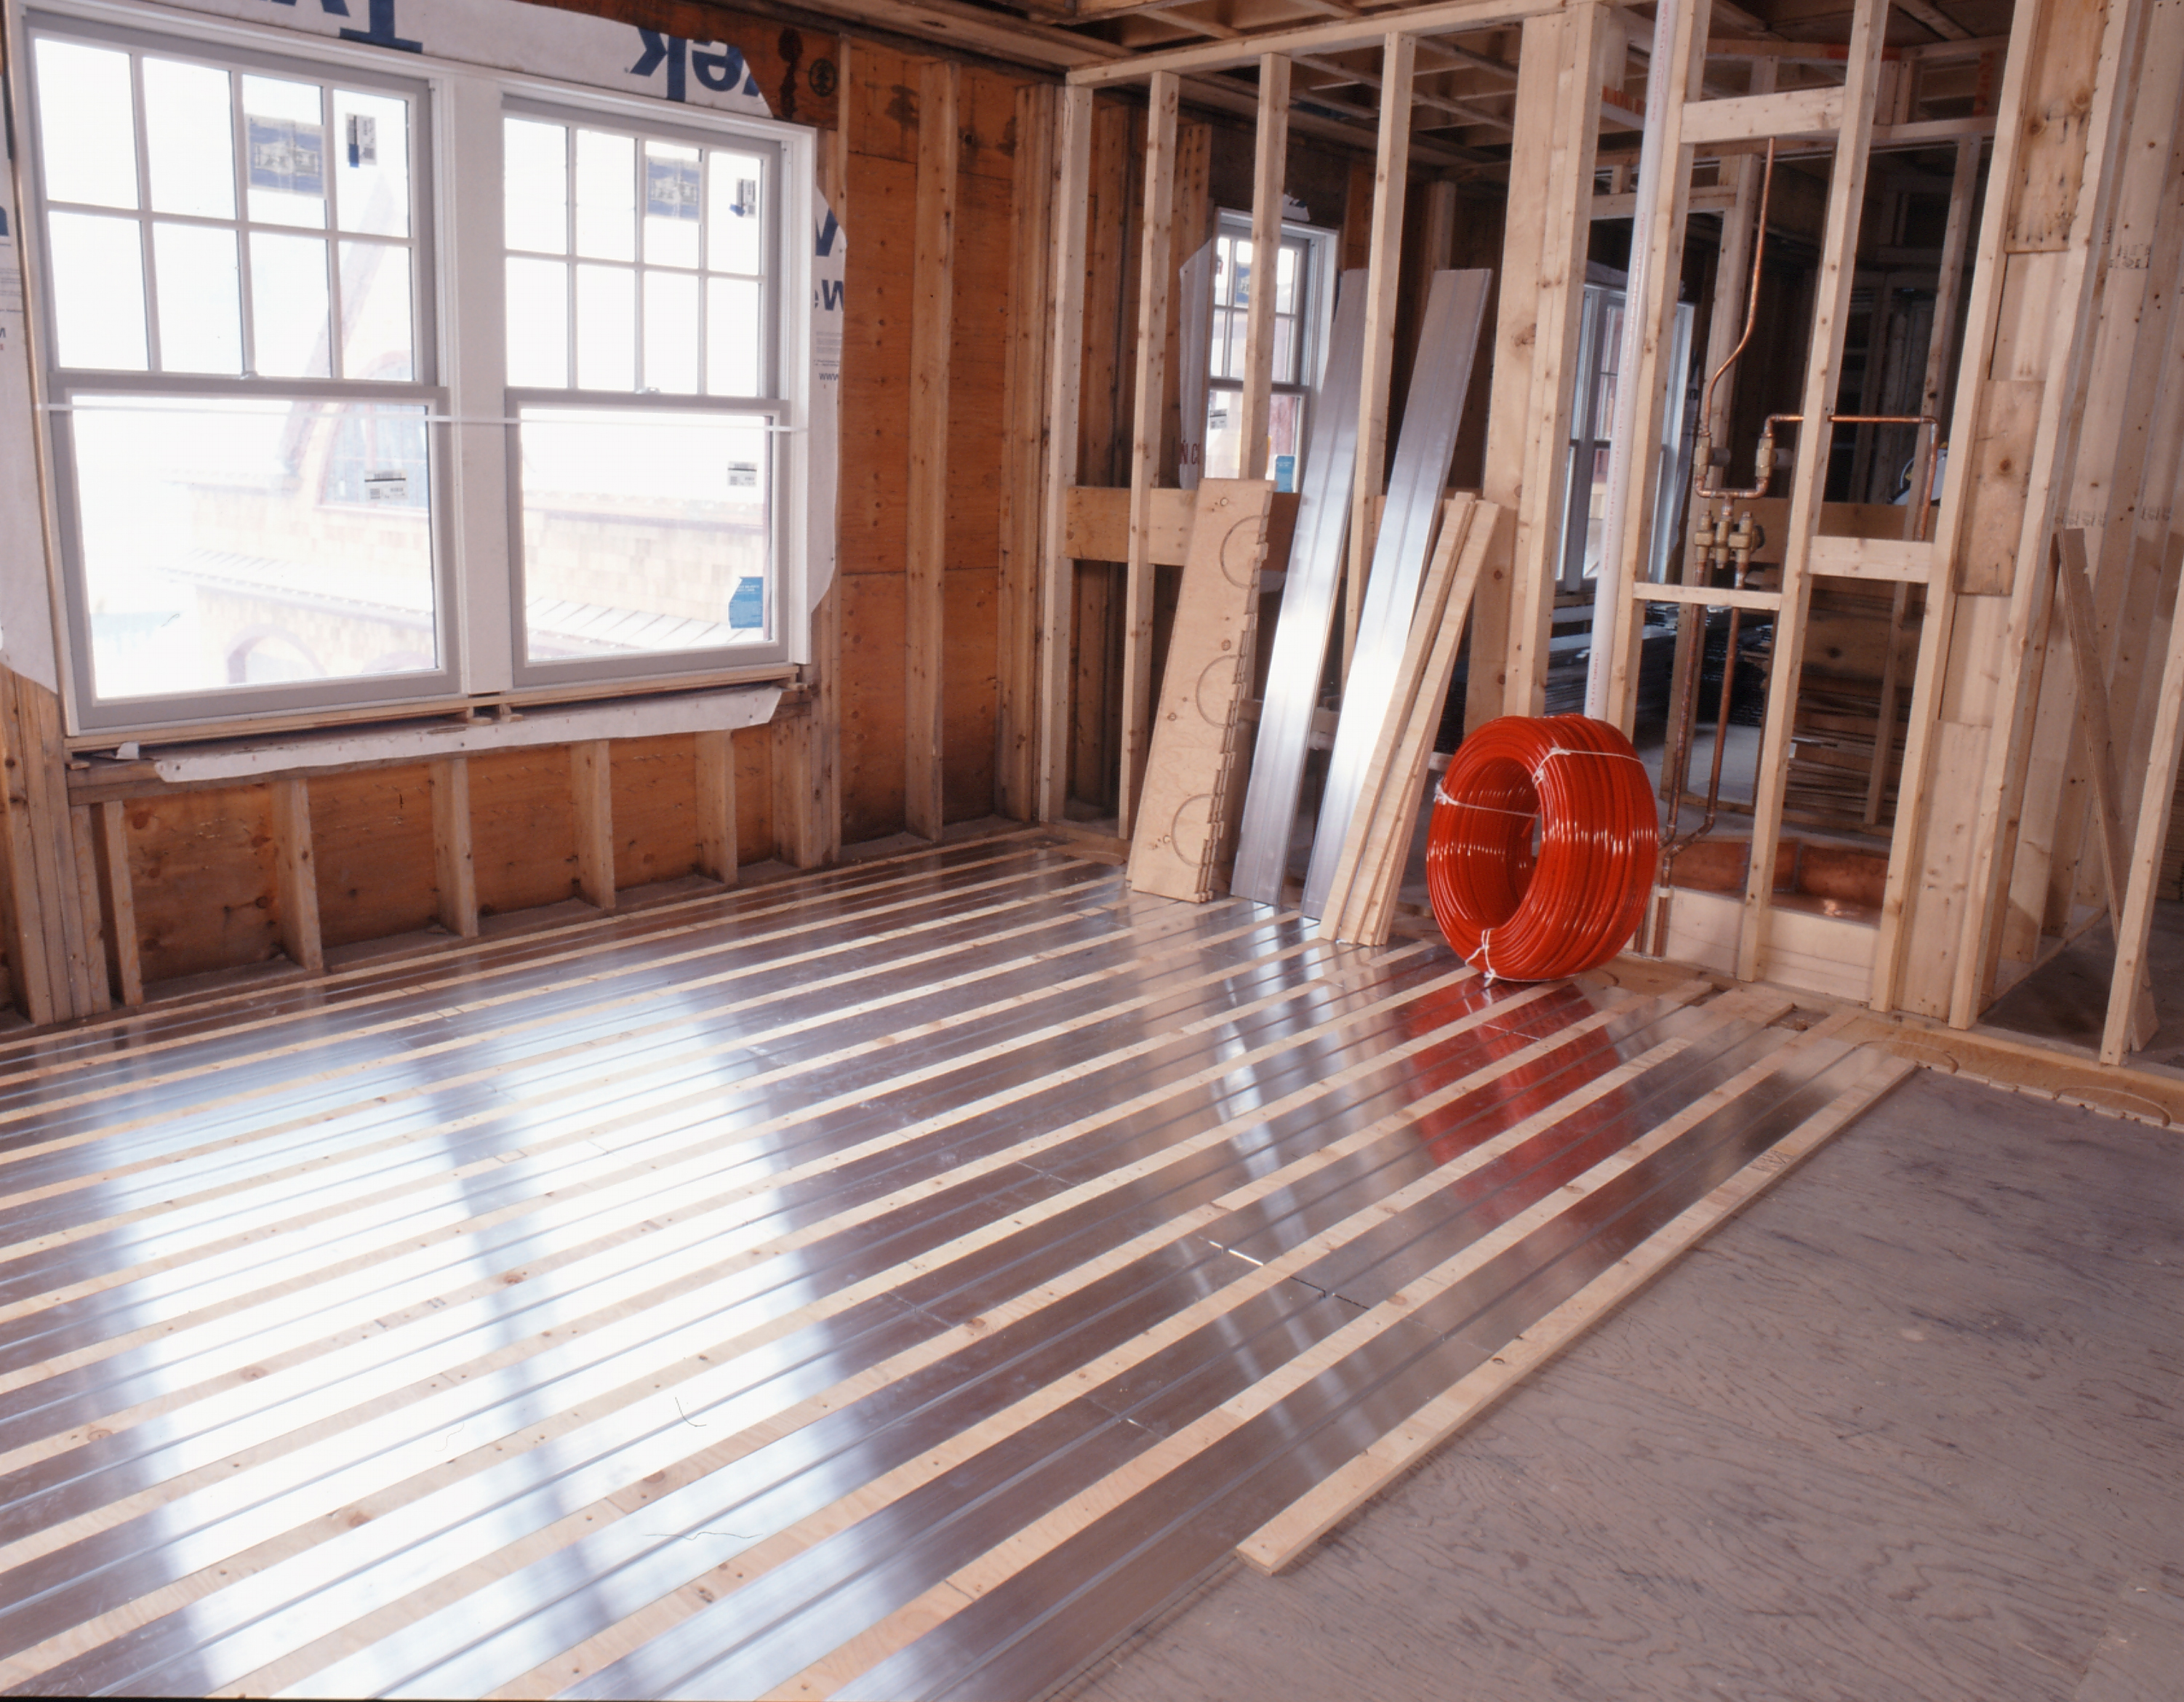 Energy efficient heating radiant floor installation from tacoma to the panel systems are pre engineered and have channels in the aluminum transfer plates where the tubing snaps into place floor coverings are then installed solutioingenieria Gallery